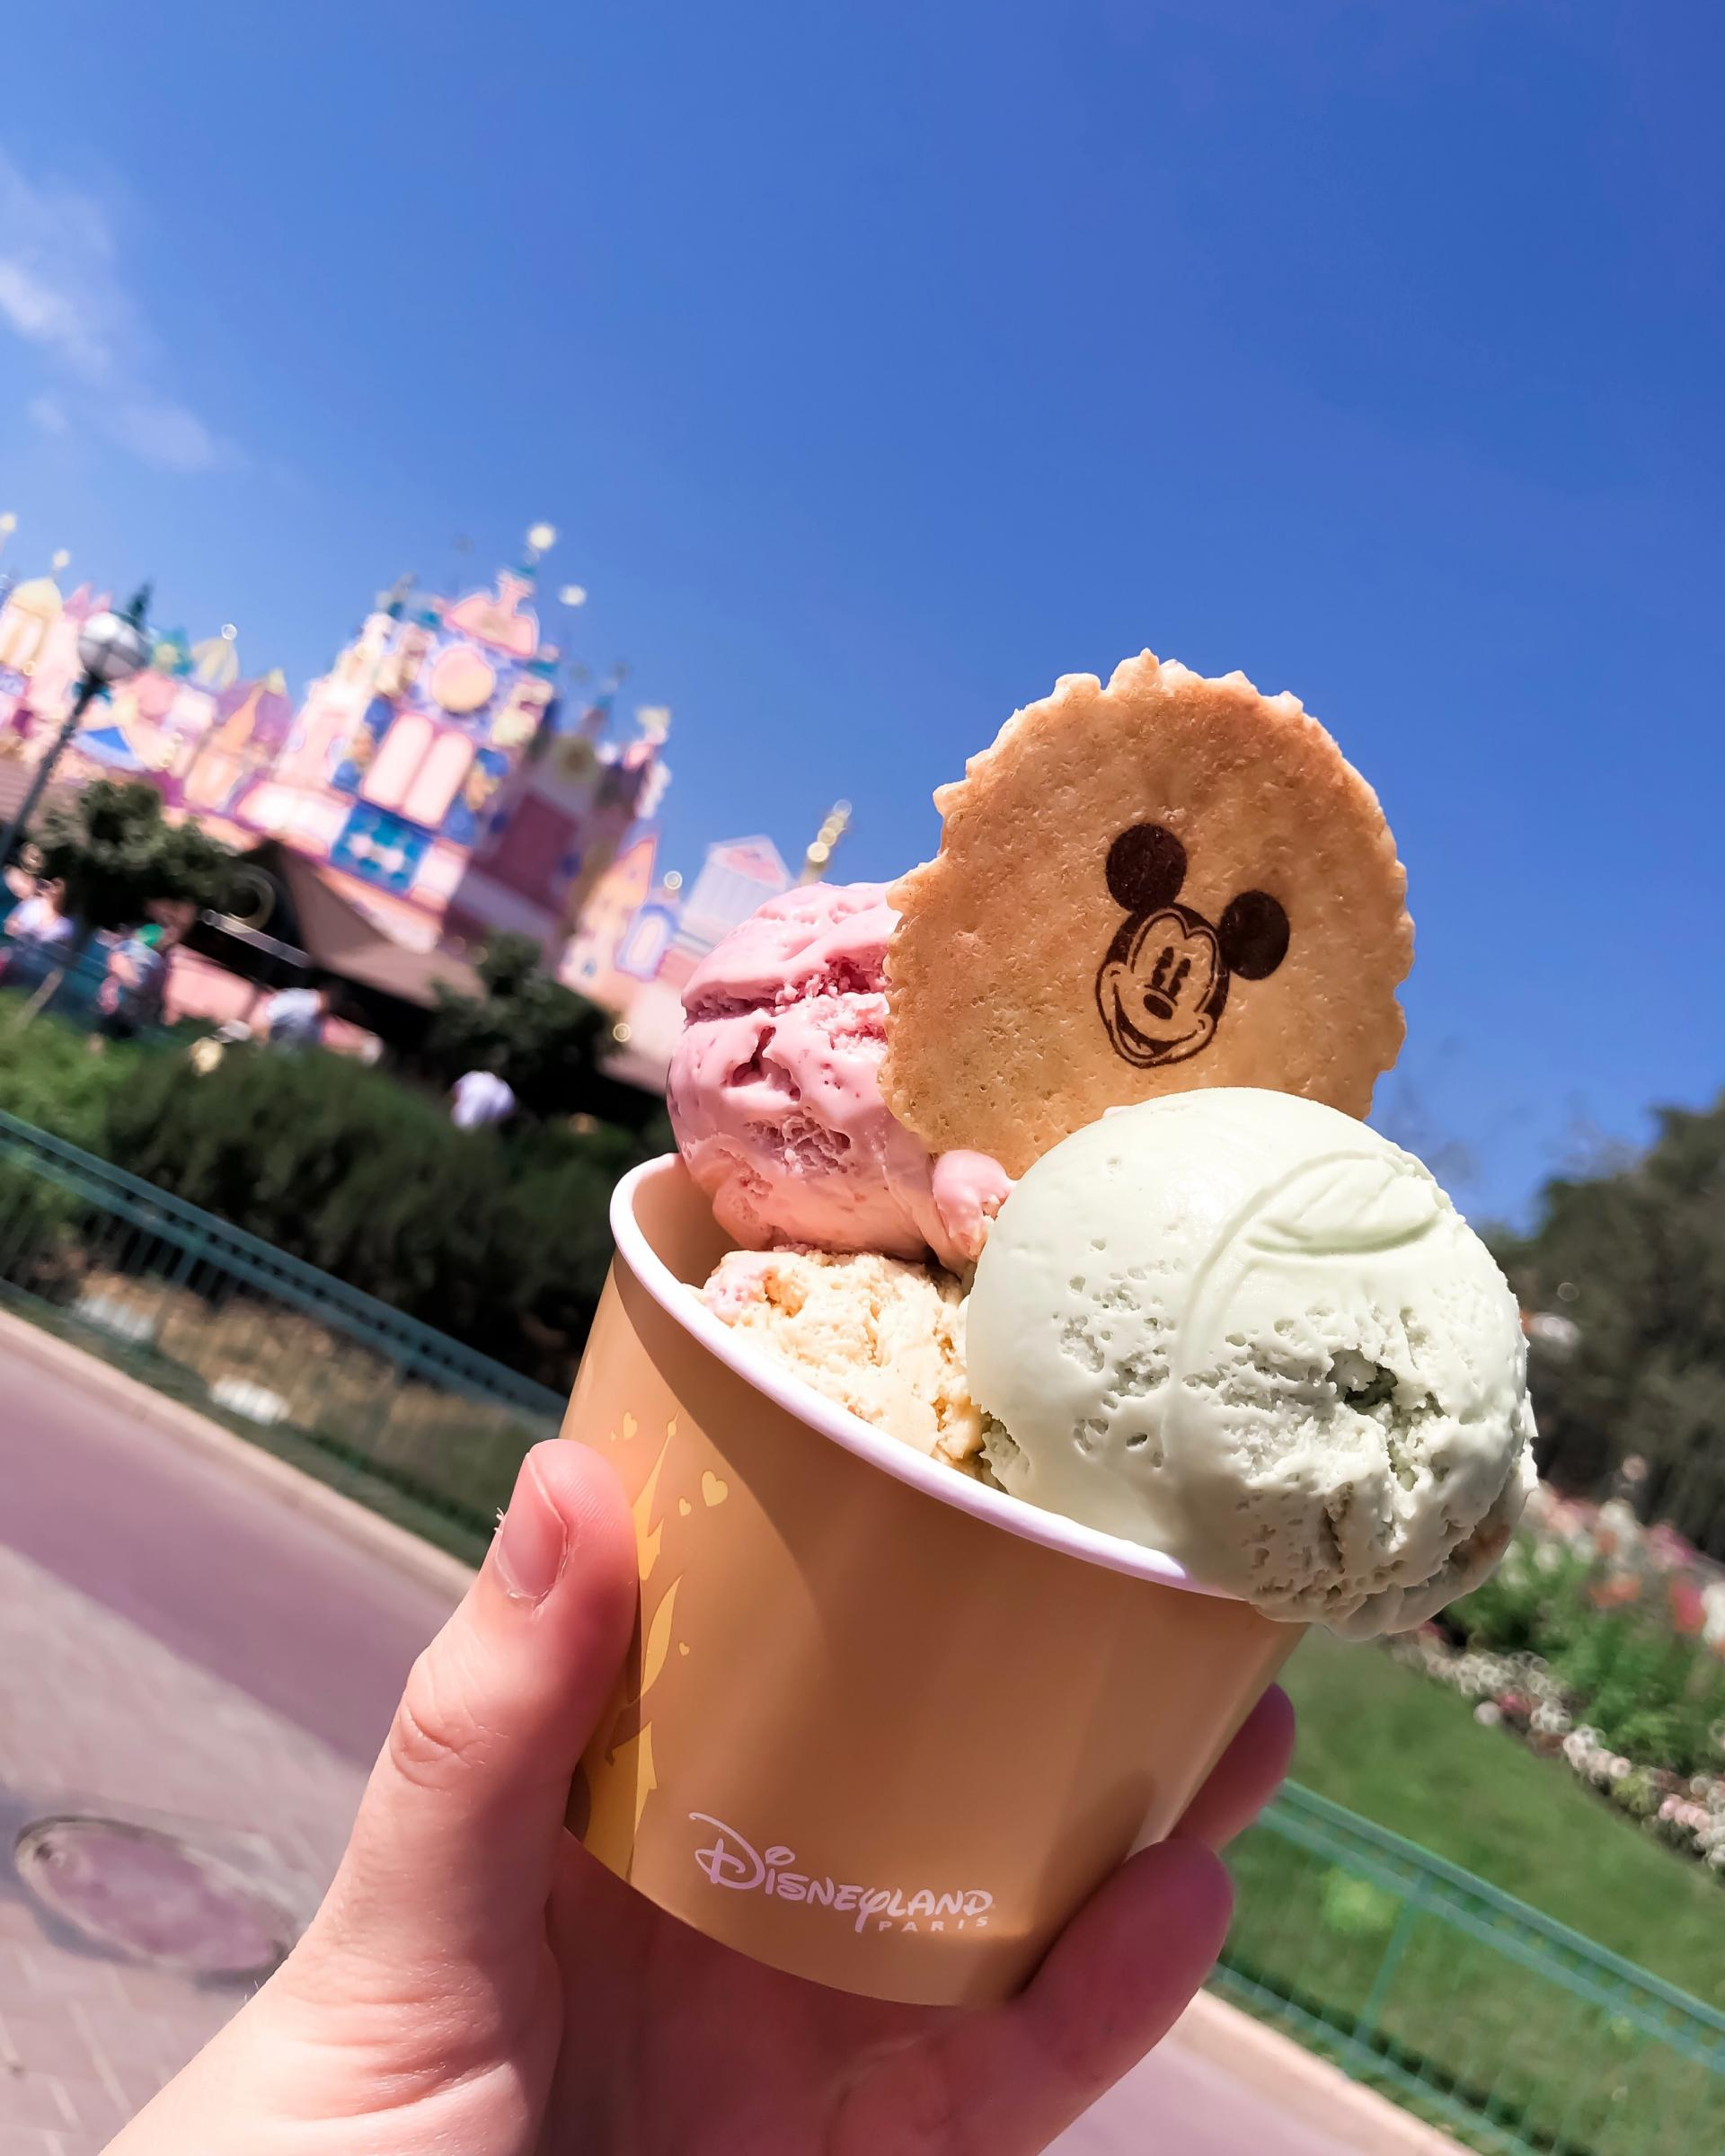 ice cream from fantasia gelati at Disneyland Paris. Disneyland Paris for First-timers